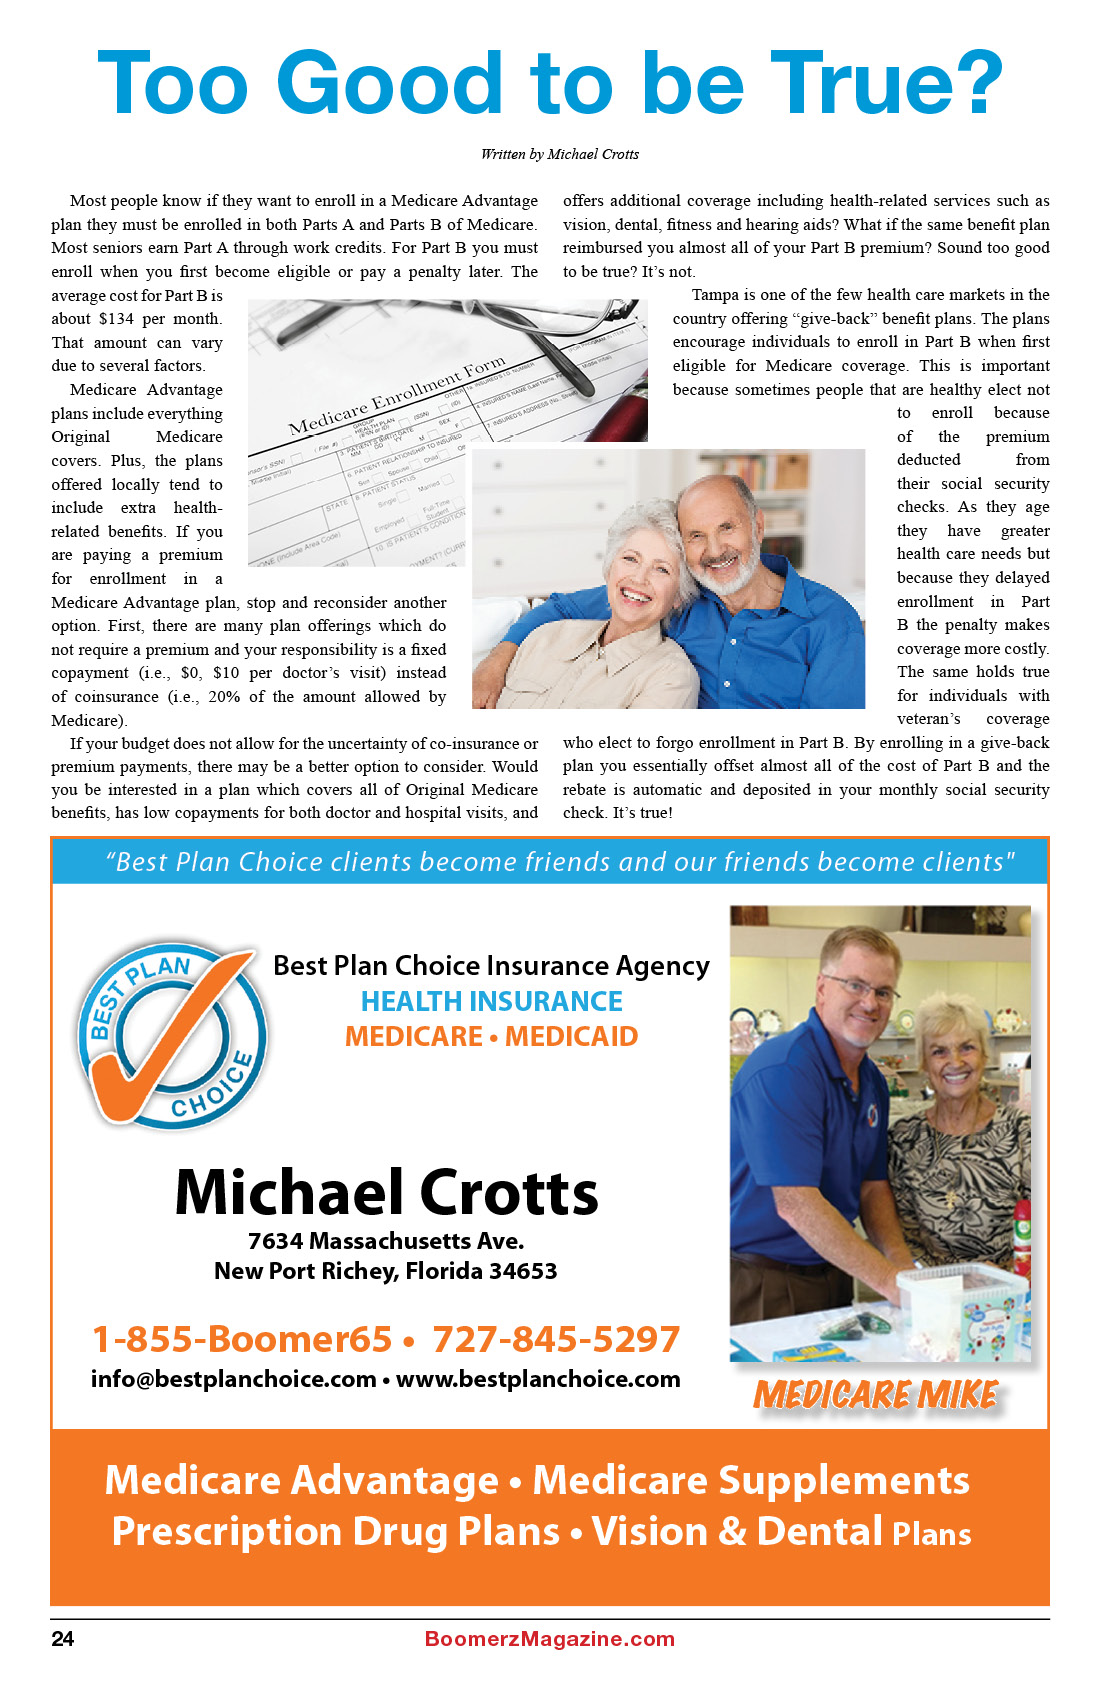 2018 October Boomerz Magazine Page 24 Add from Best-Plan-Choice-Insurance-Agency